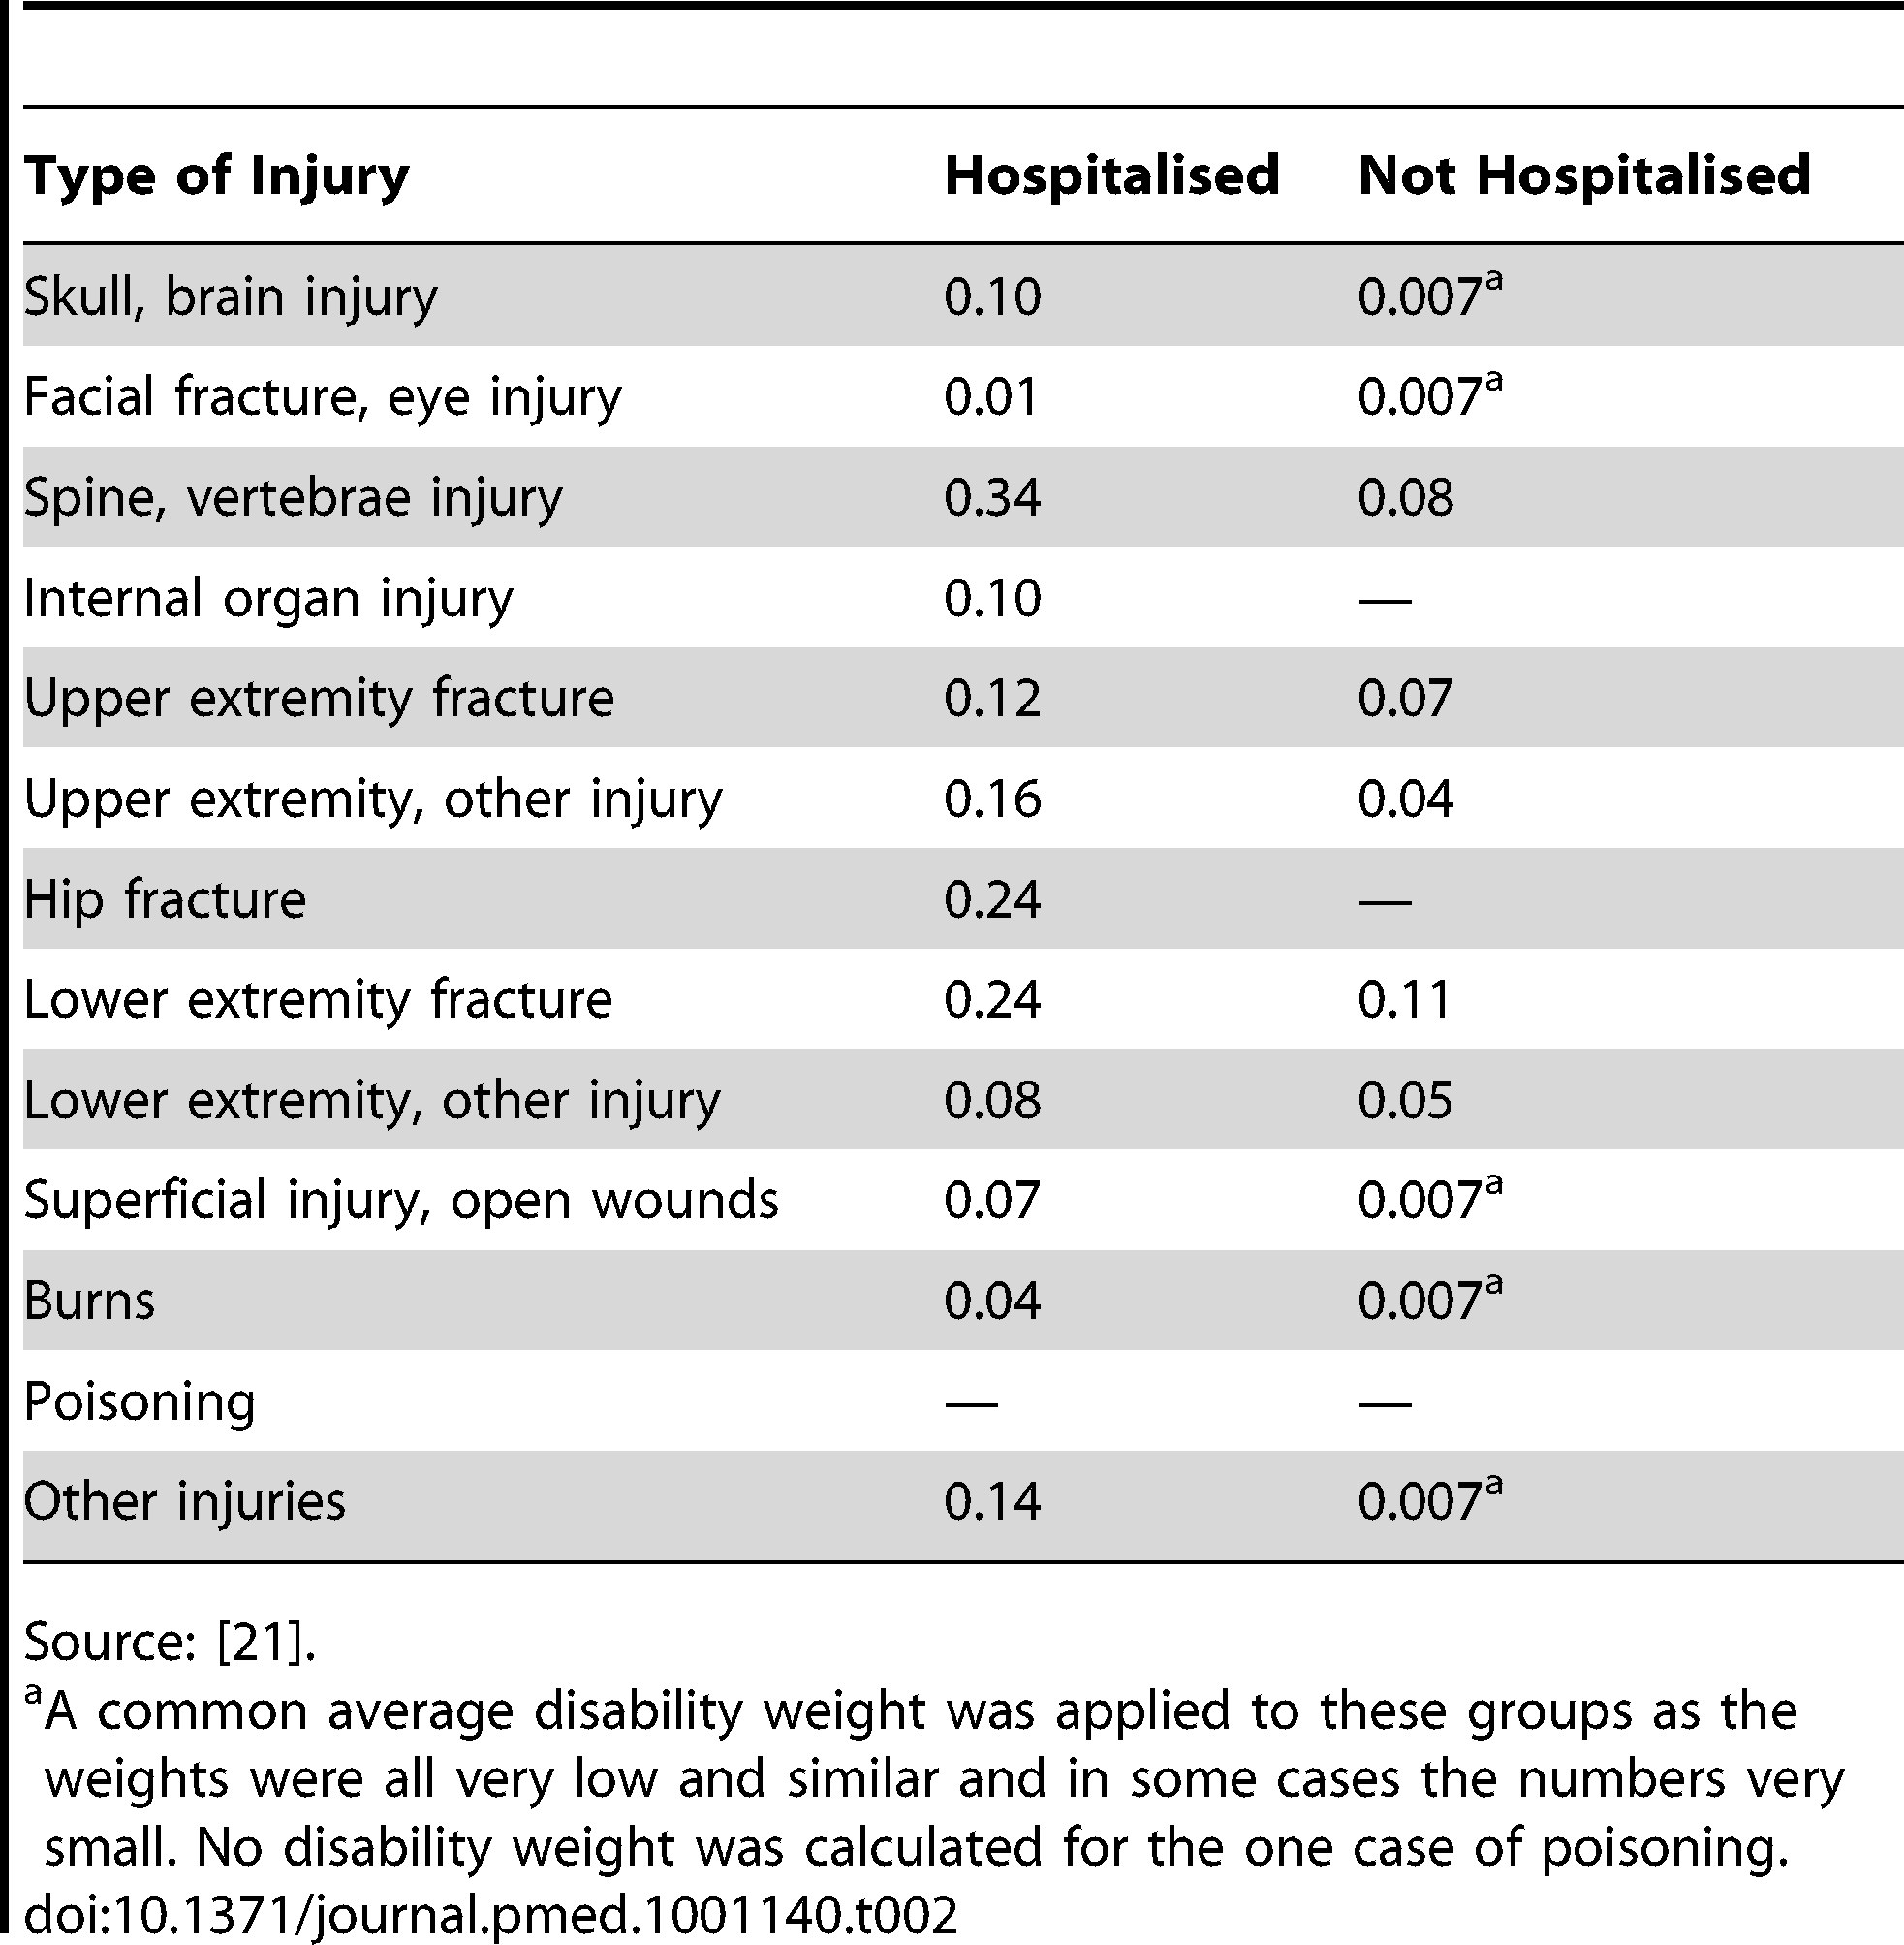 Time-weighted annualised disability weights for the 13-injury group classification by hospitalisation status.